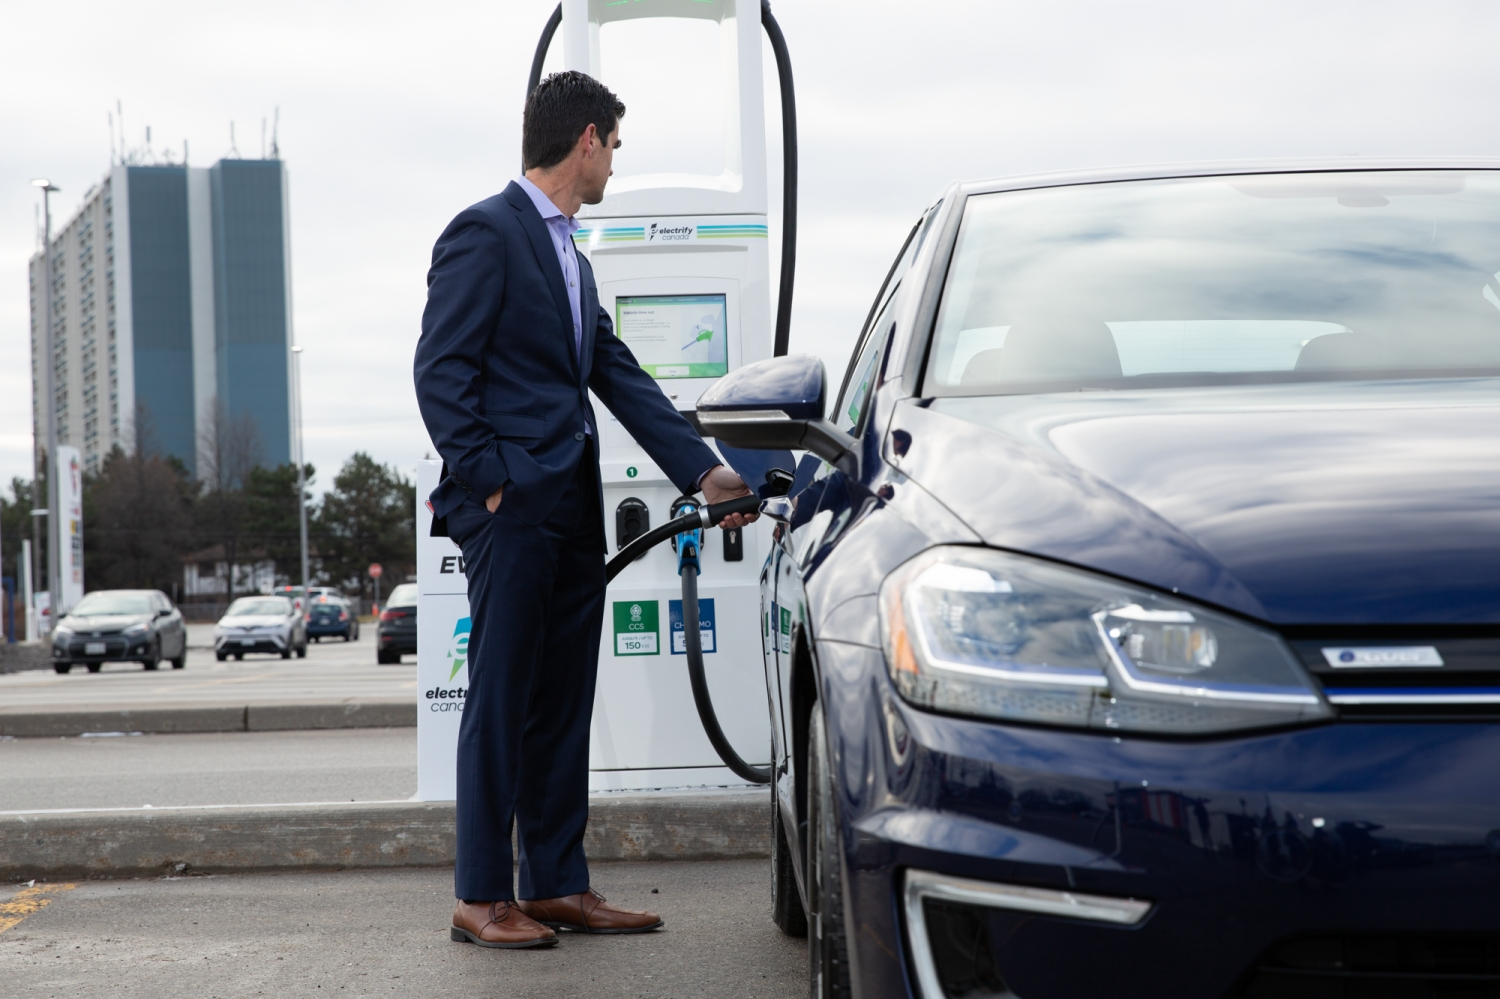 Small-Electrify-Canada-Announces-Agreement-with-Volkswagen-Canada-Providing-Electric-Vehicle-Charging-for-New-2020-VW-e-Golf-Customers-98